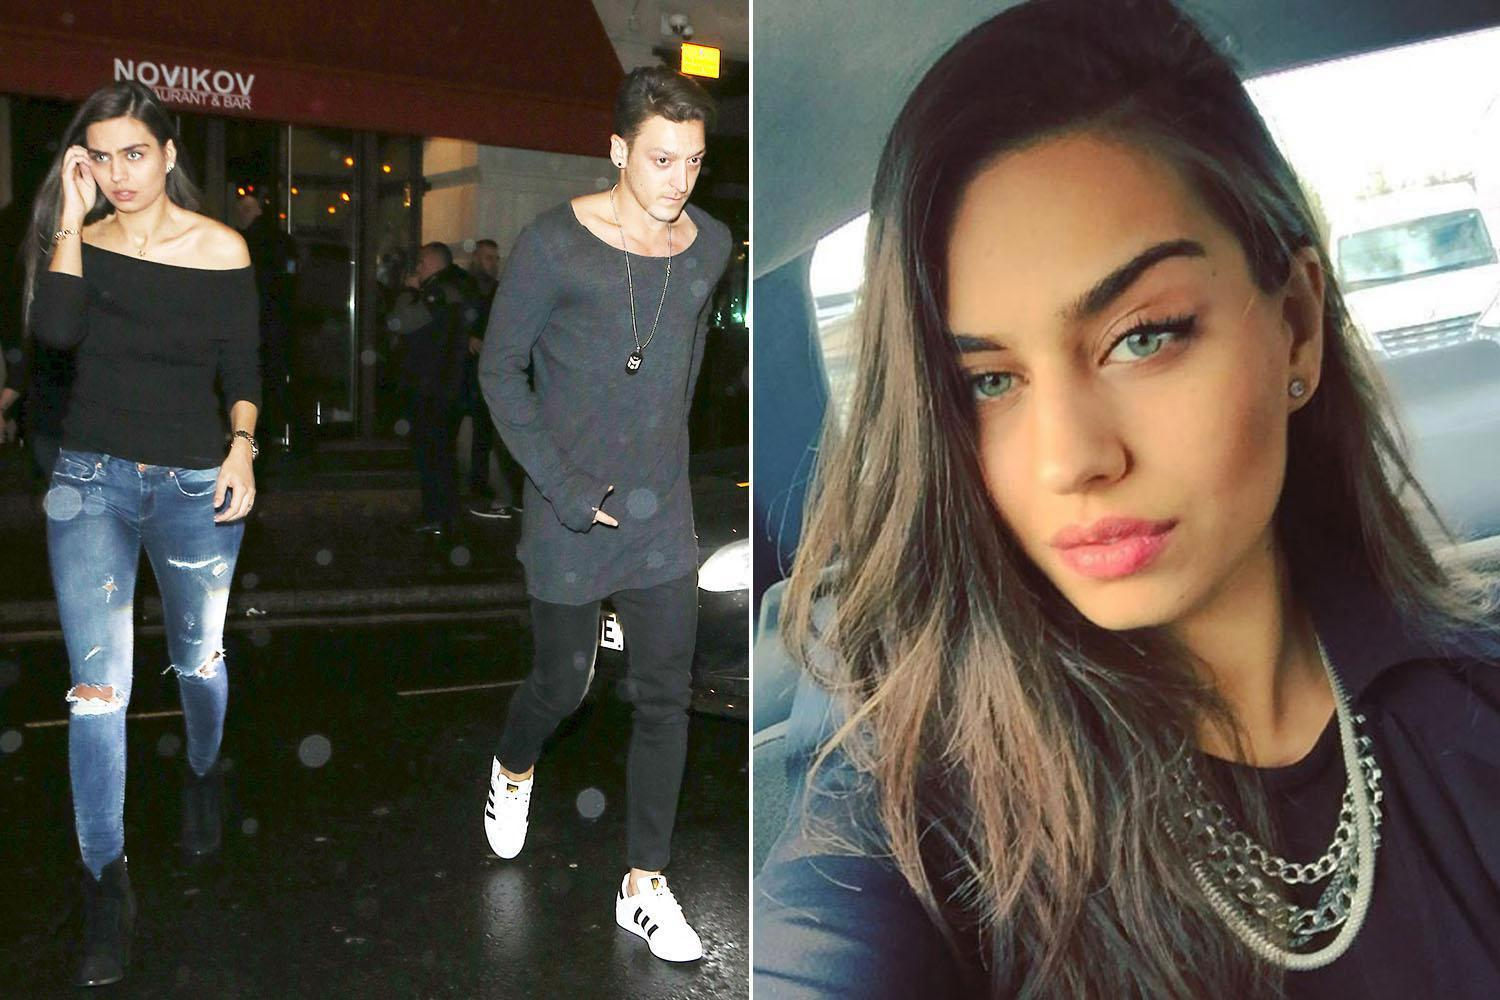 Arsenal star steps out with former Miss Turkey Amine Gulse